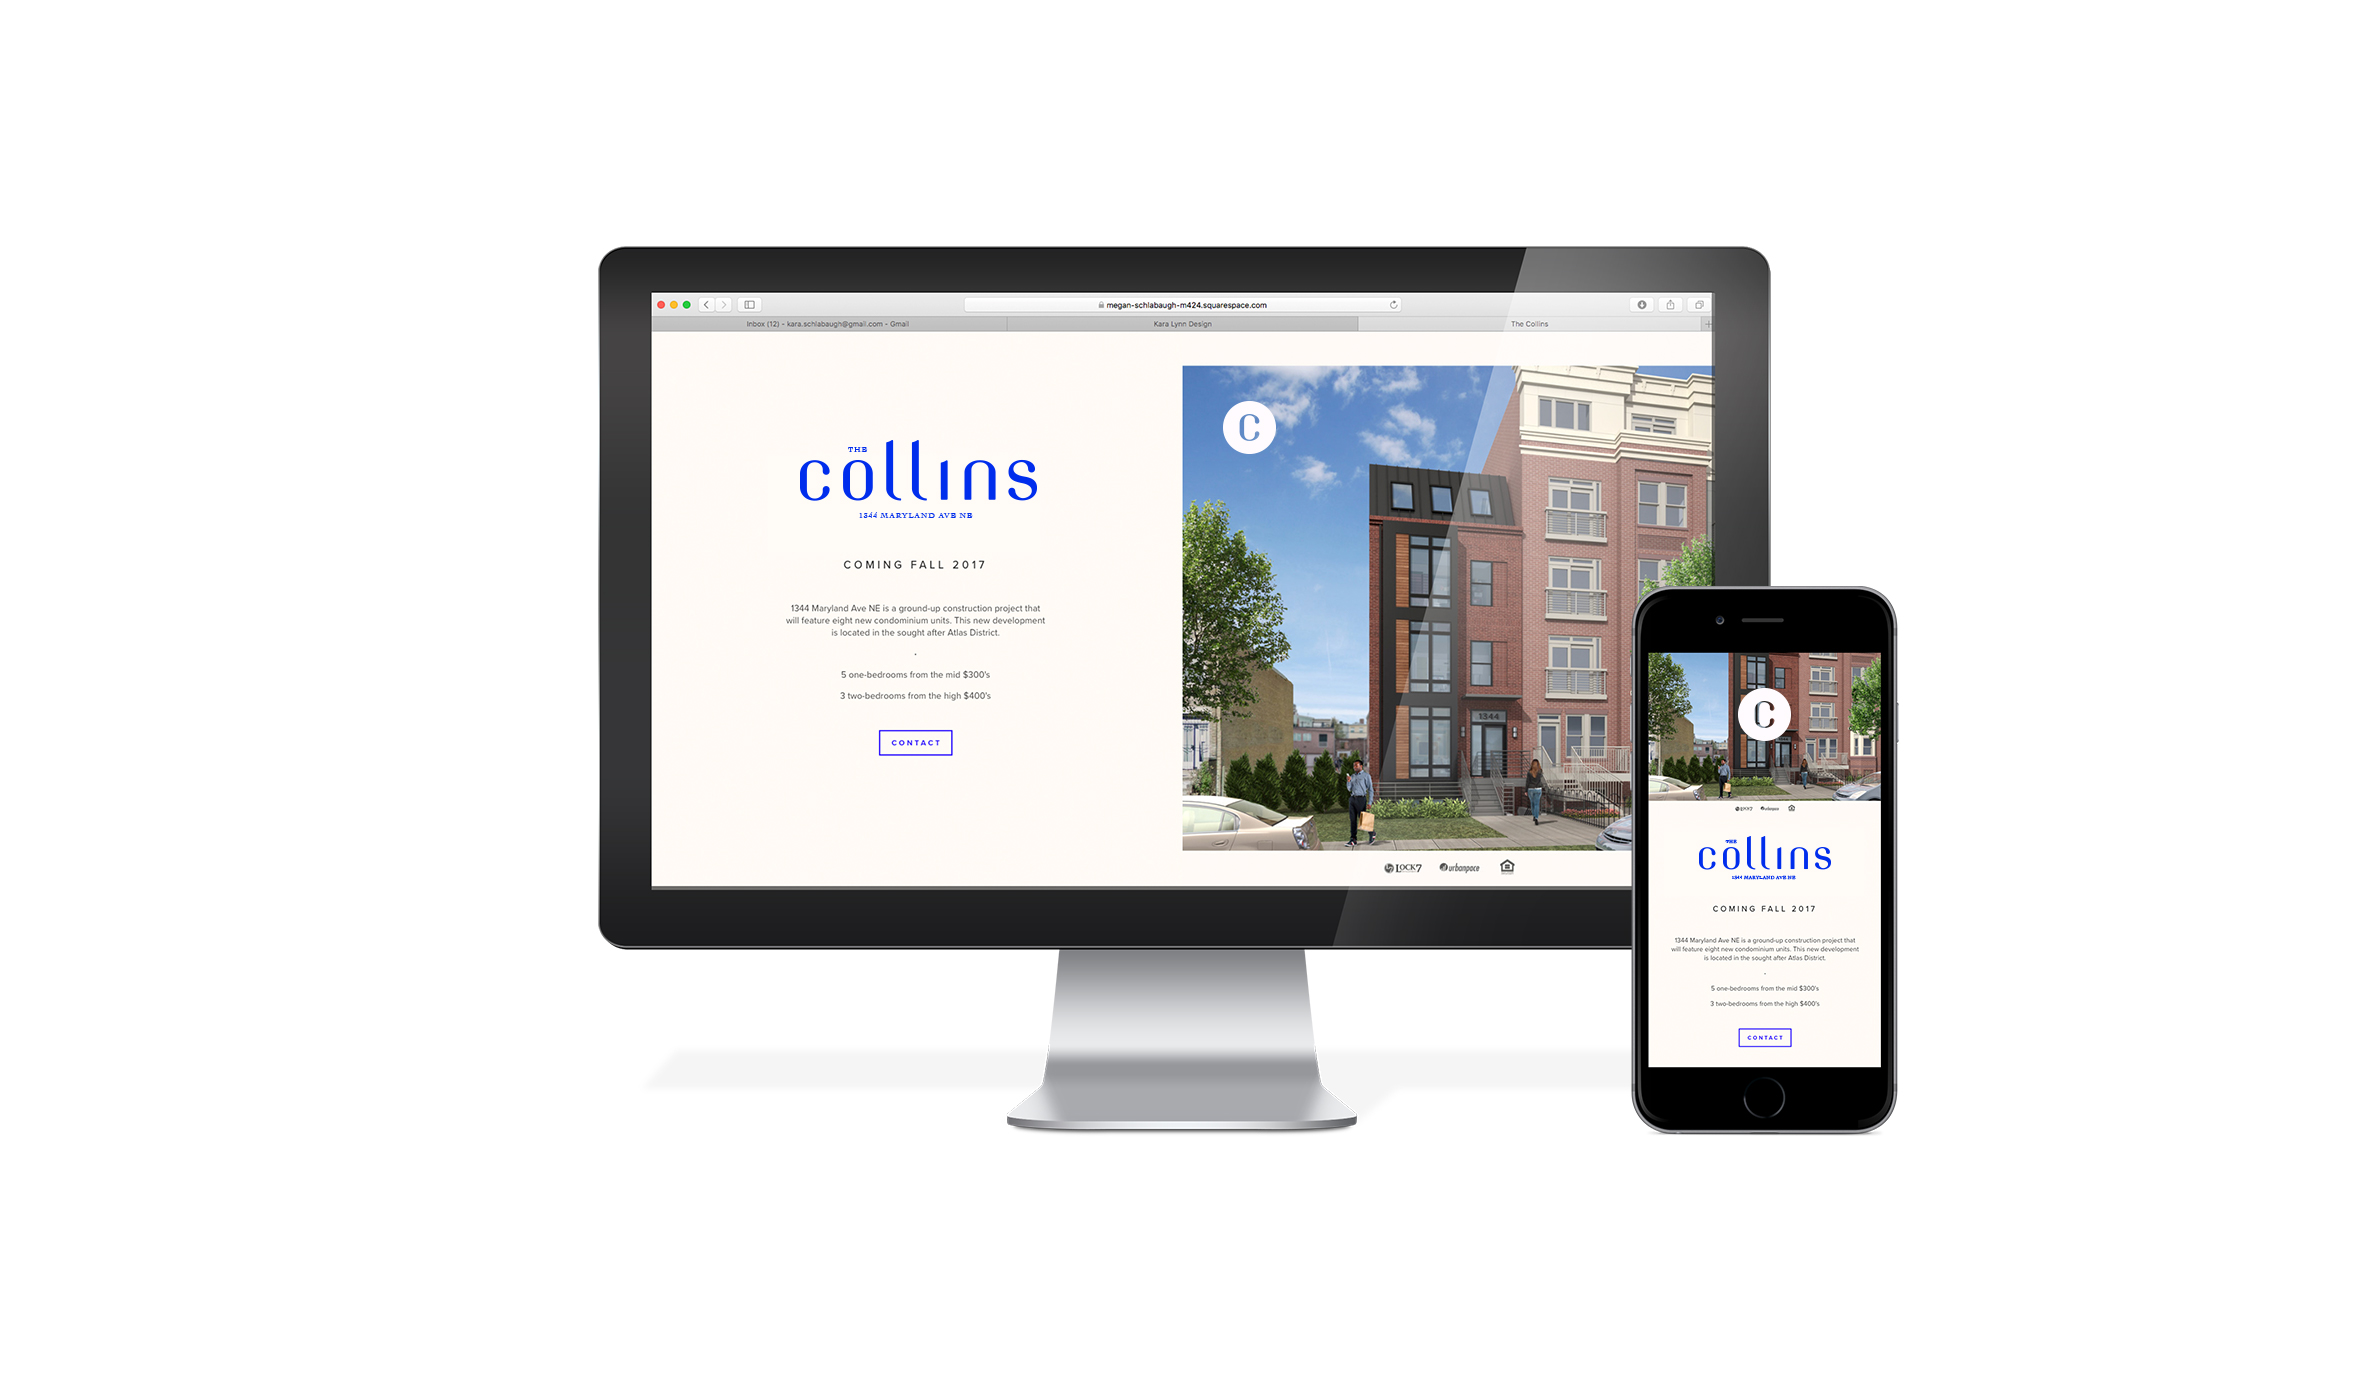 collins_website.jpg